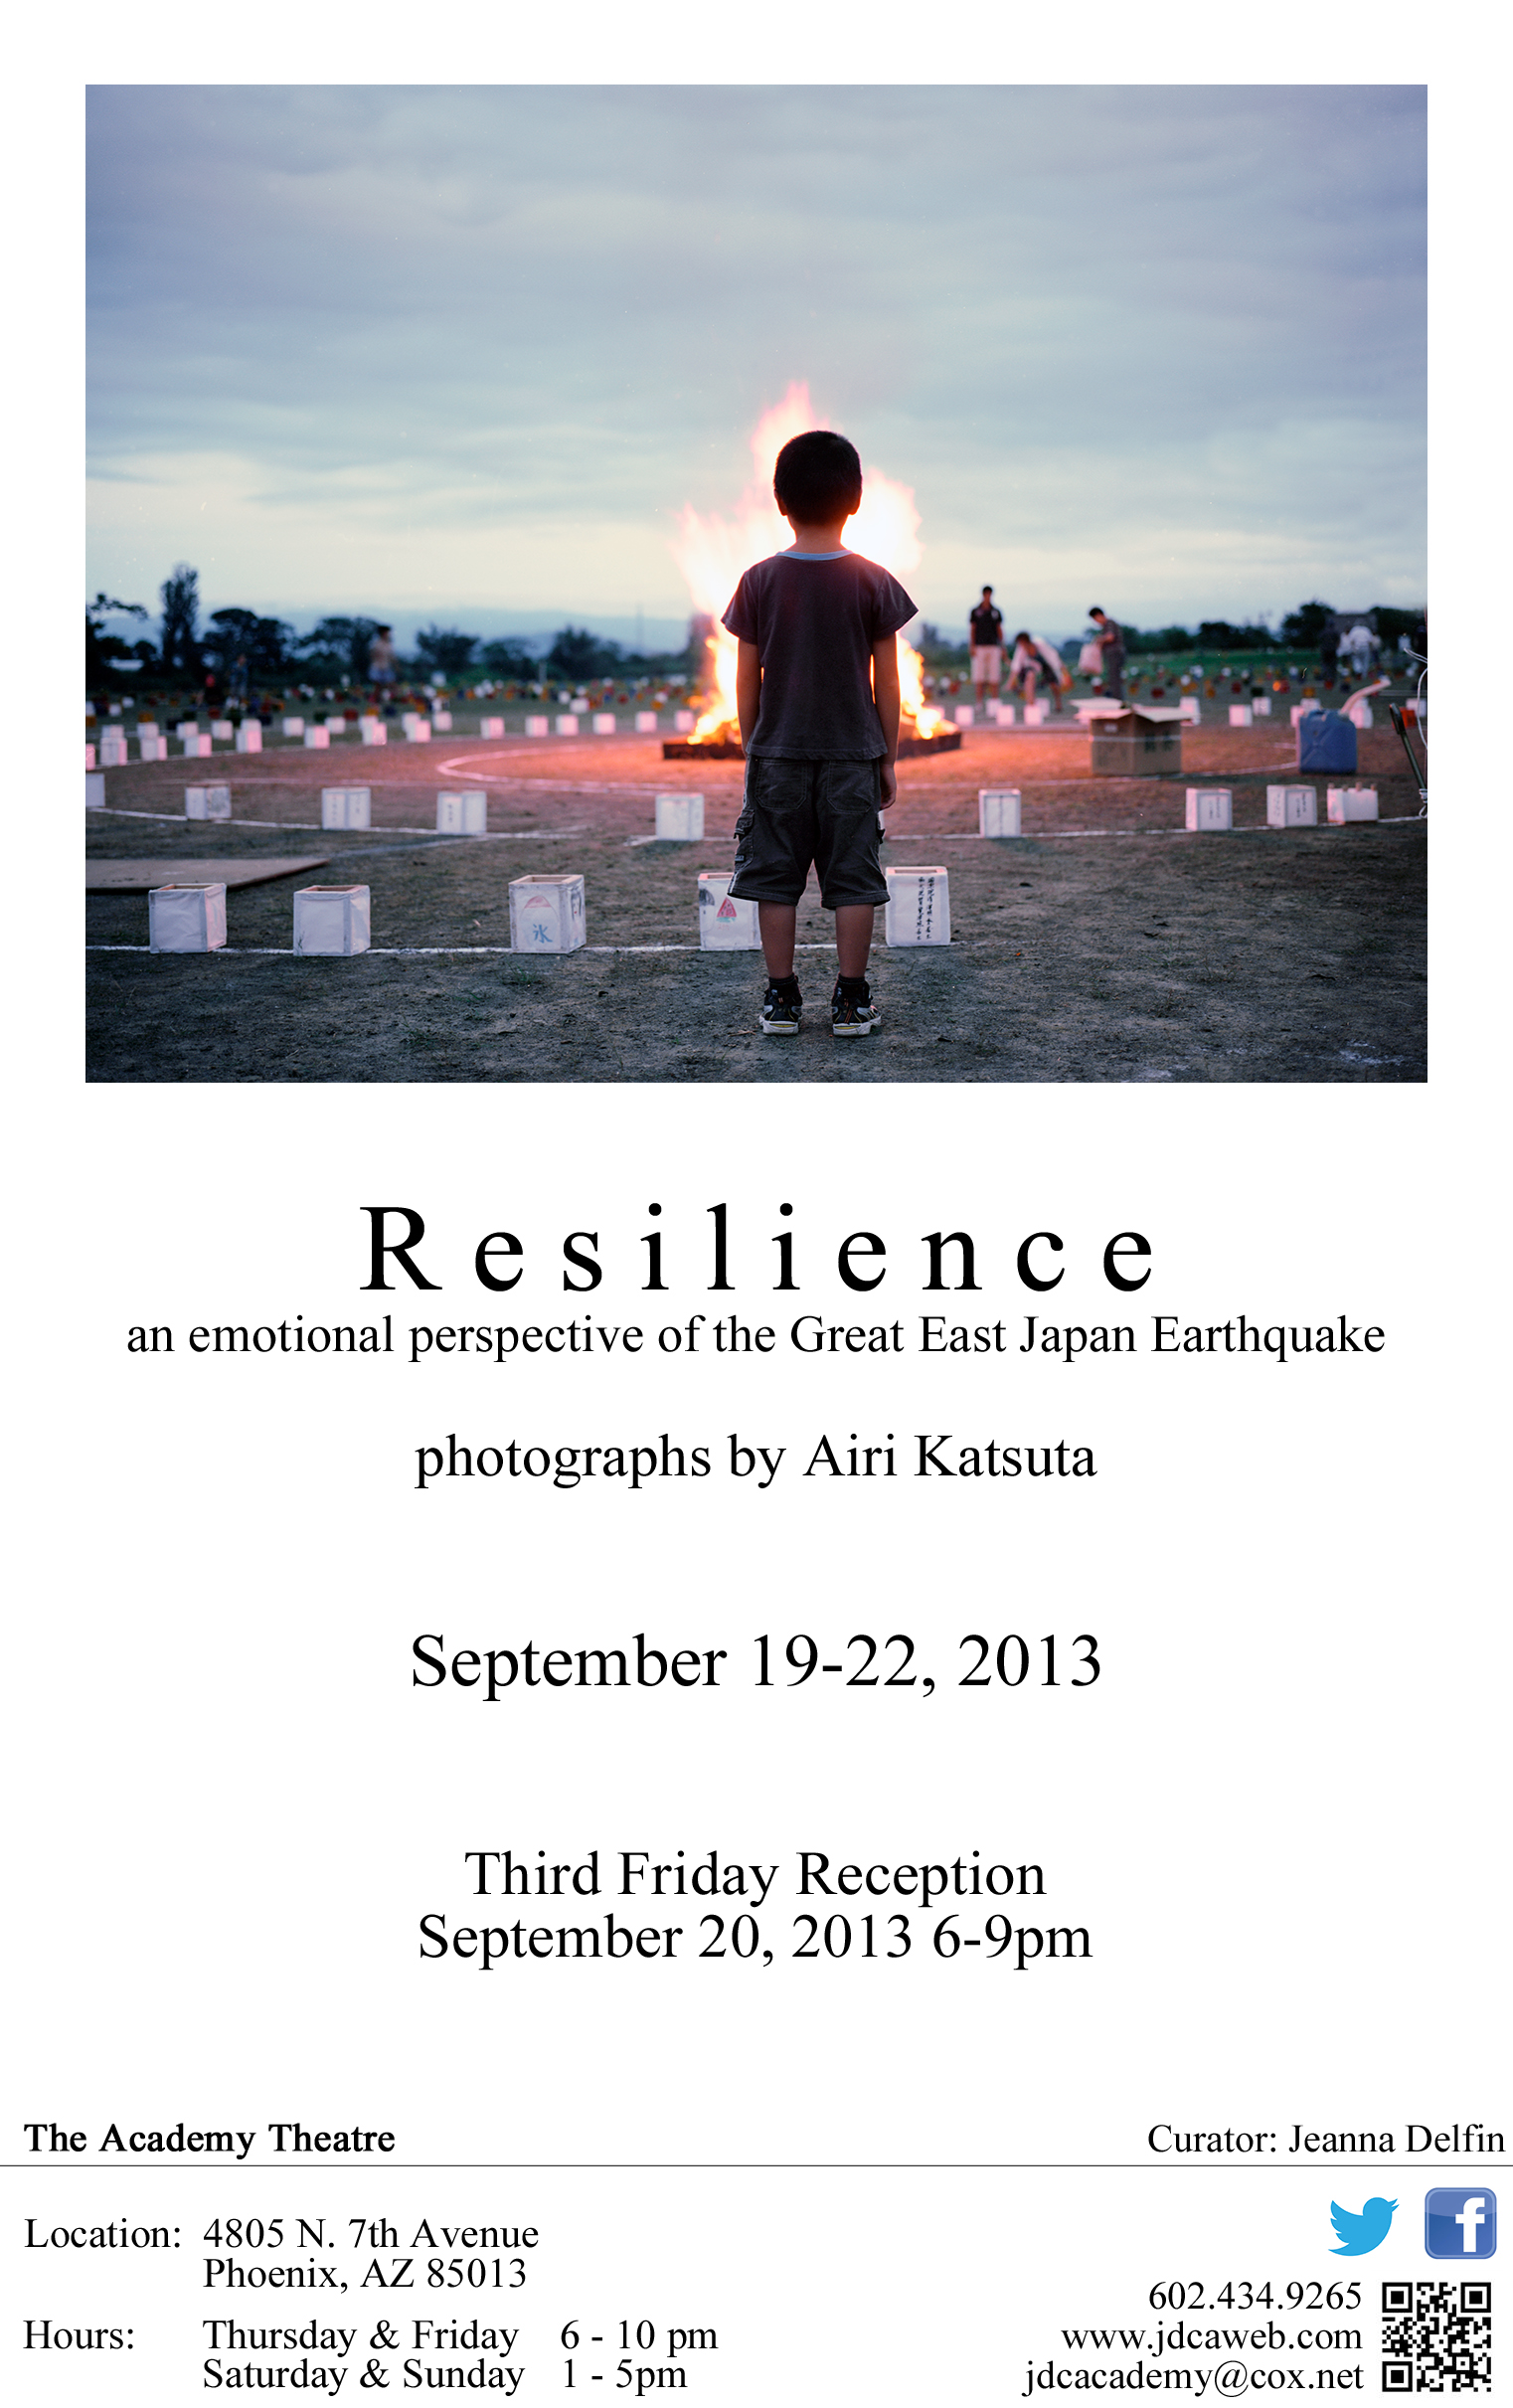 Resilience showing at the Academy Theatre